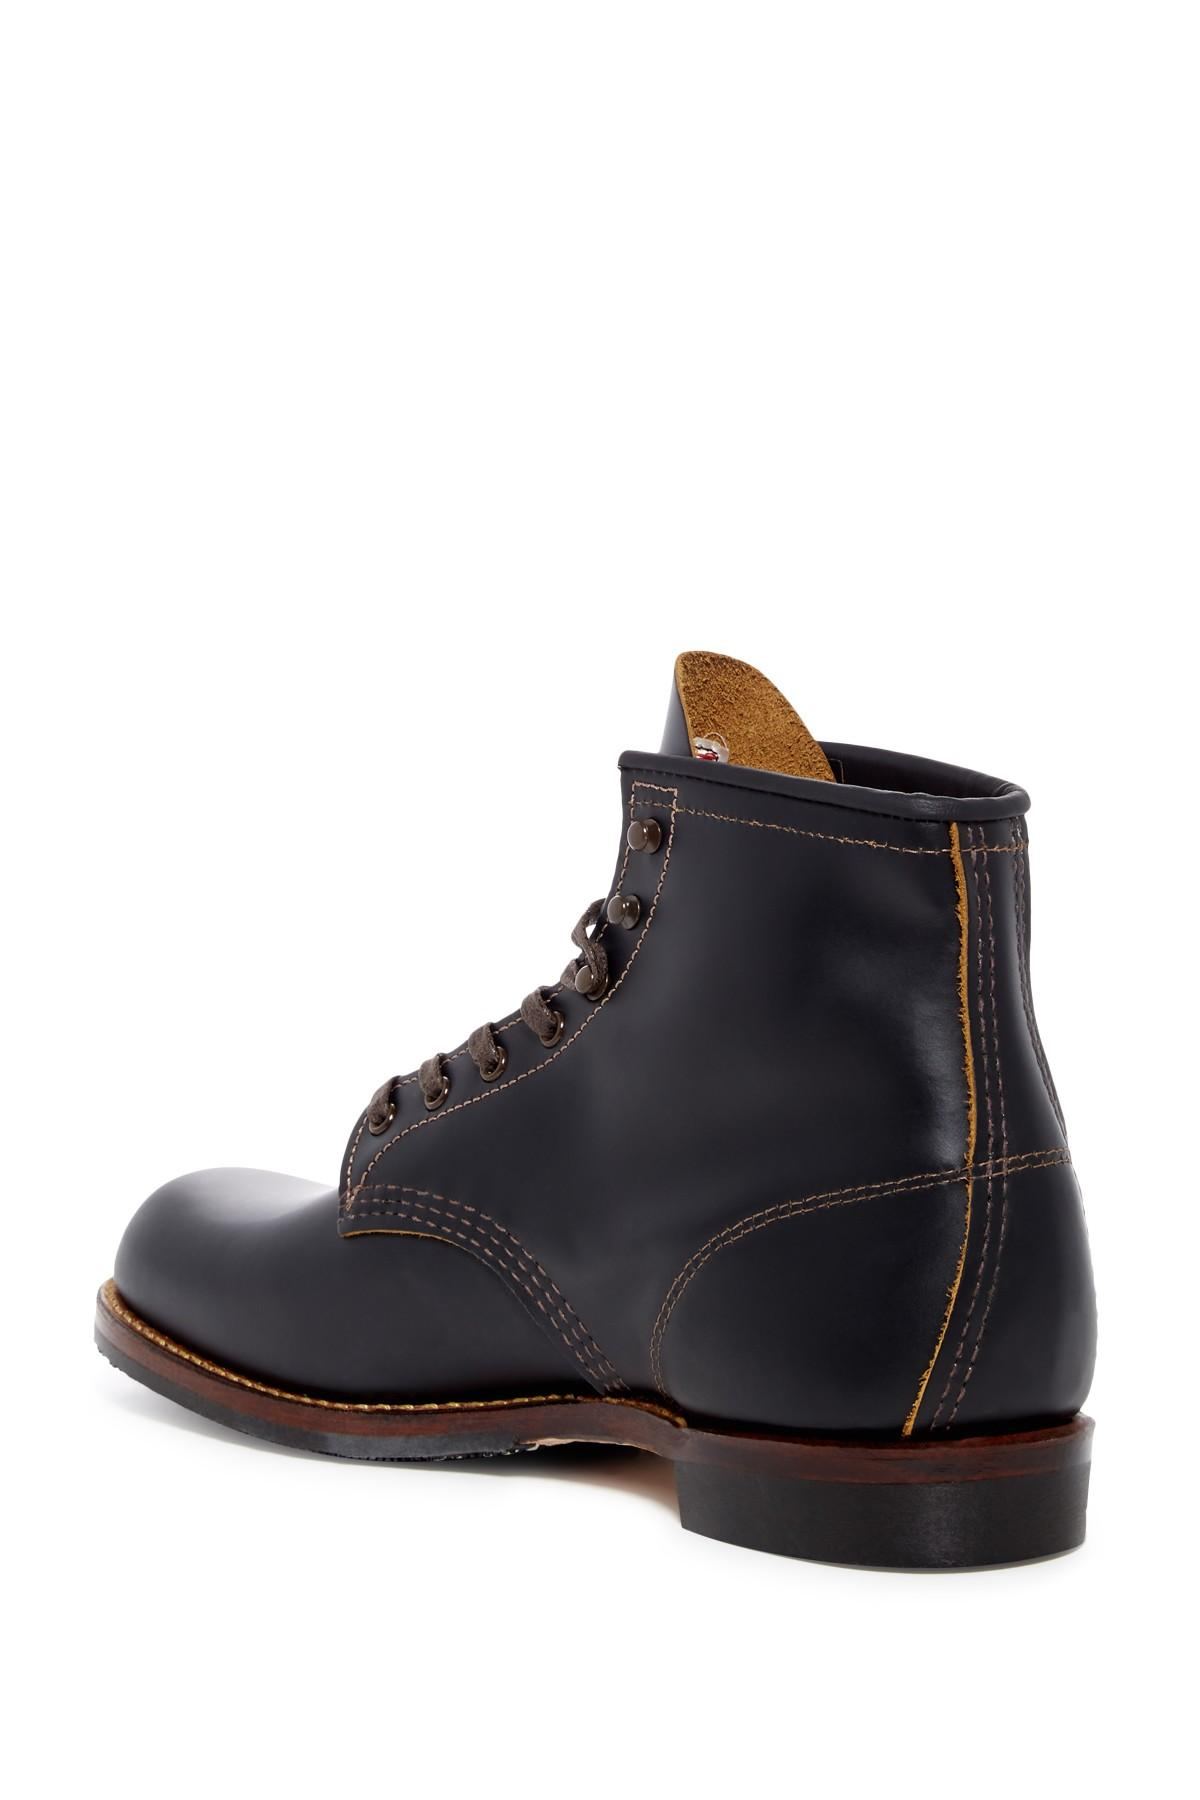 bfcf56415b7 Lyst - Red Wing Beckman Flatbox Leather Chelsea Boot - Factory ...